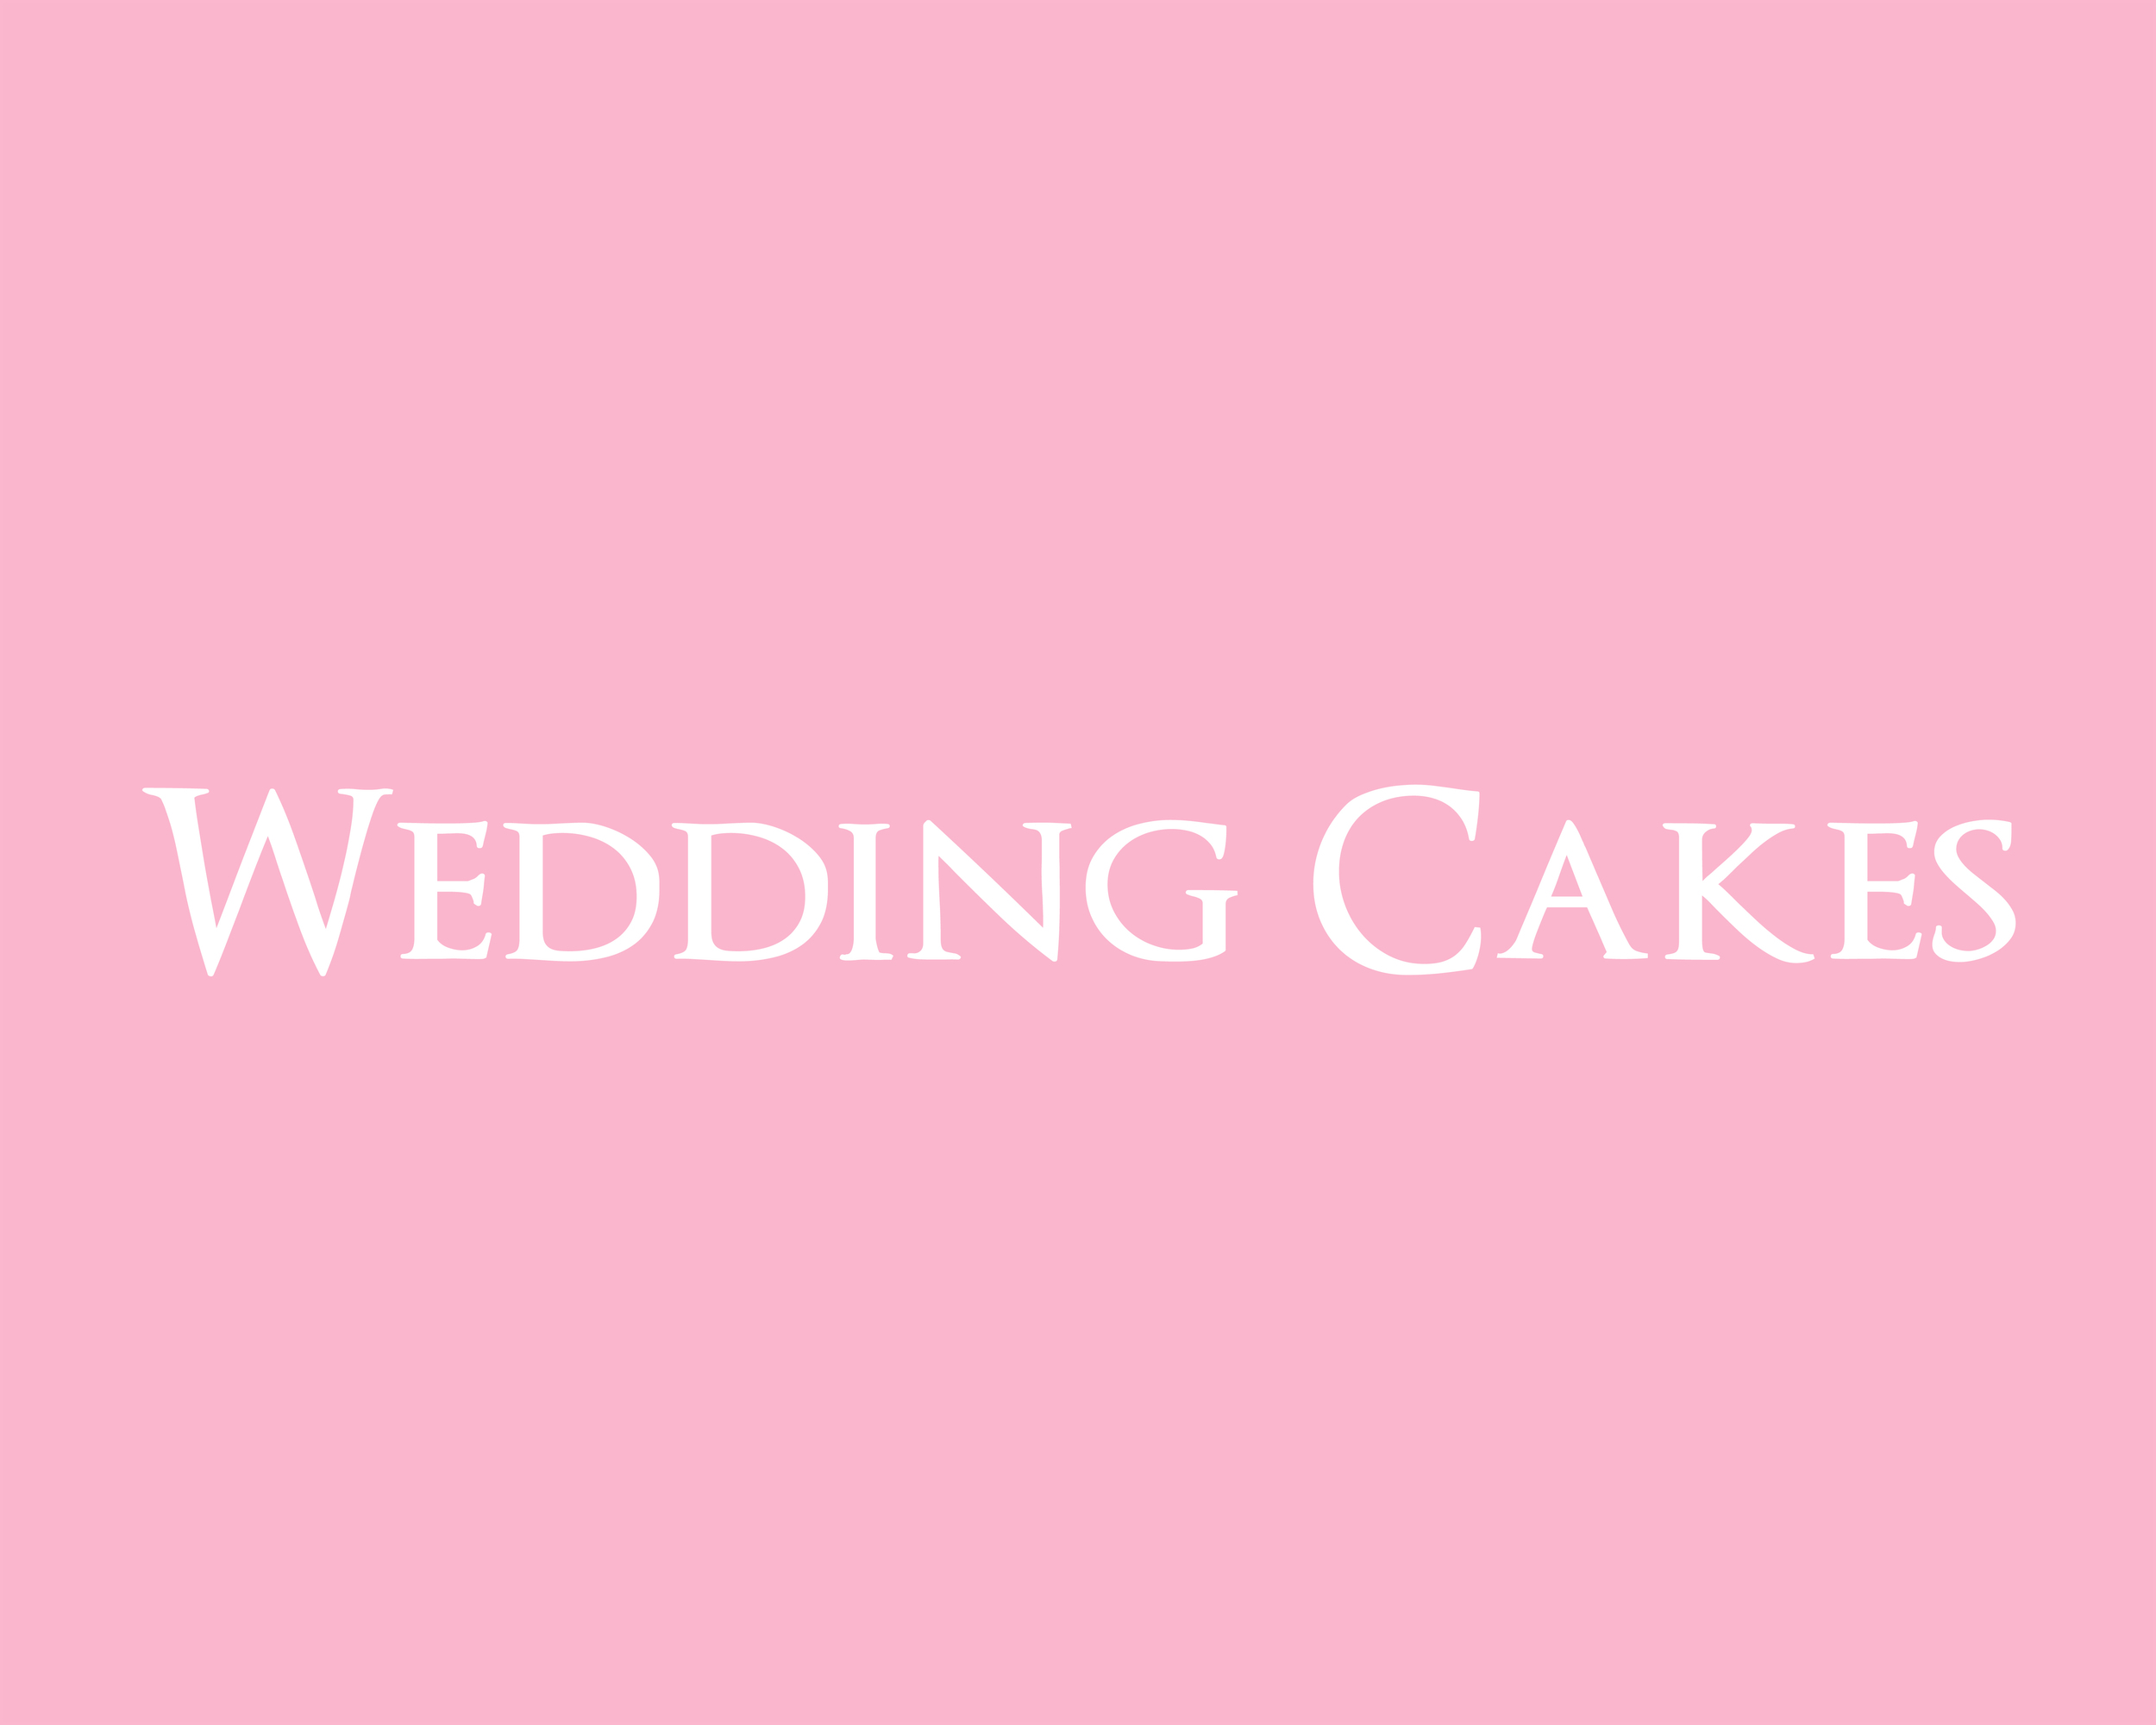 Wedding cakes gallery.jpg